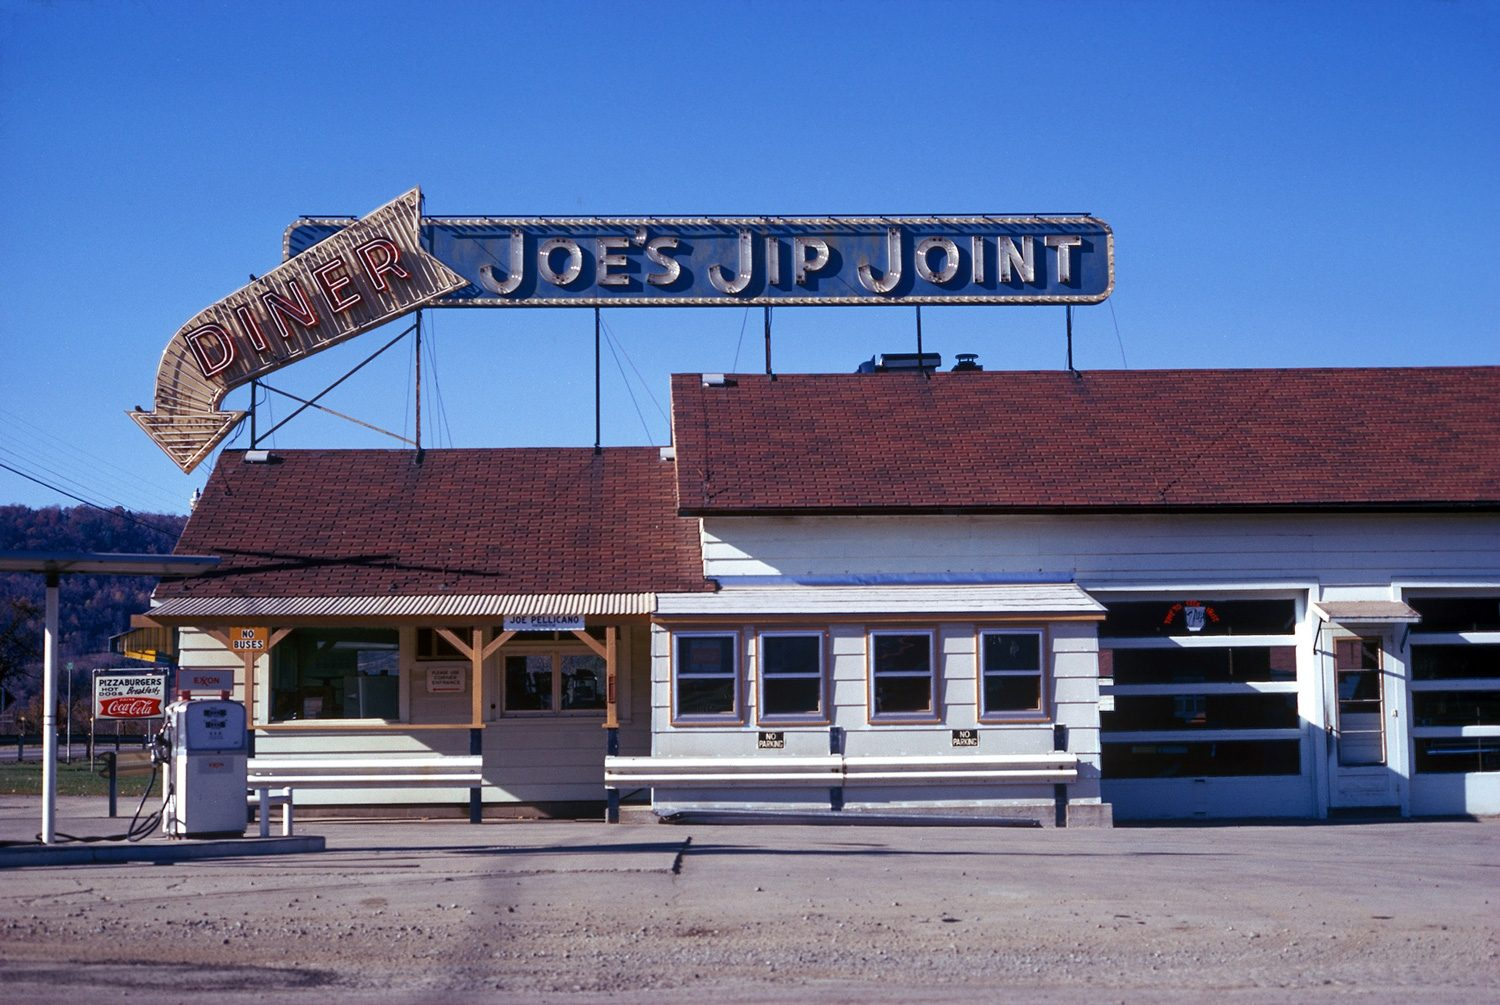 Joe's Jip Joint, Arizona